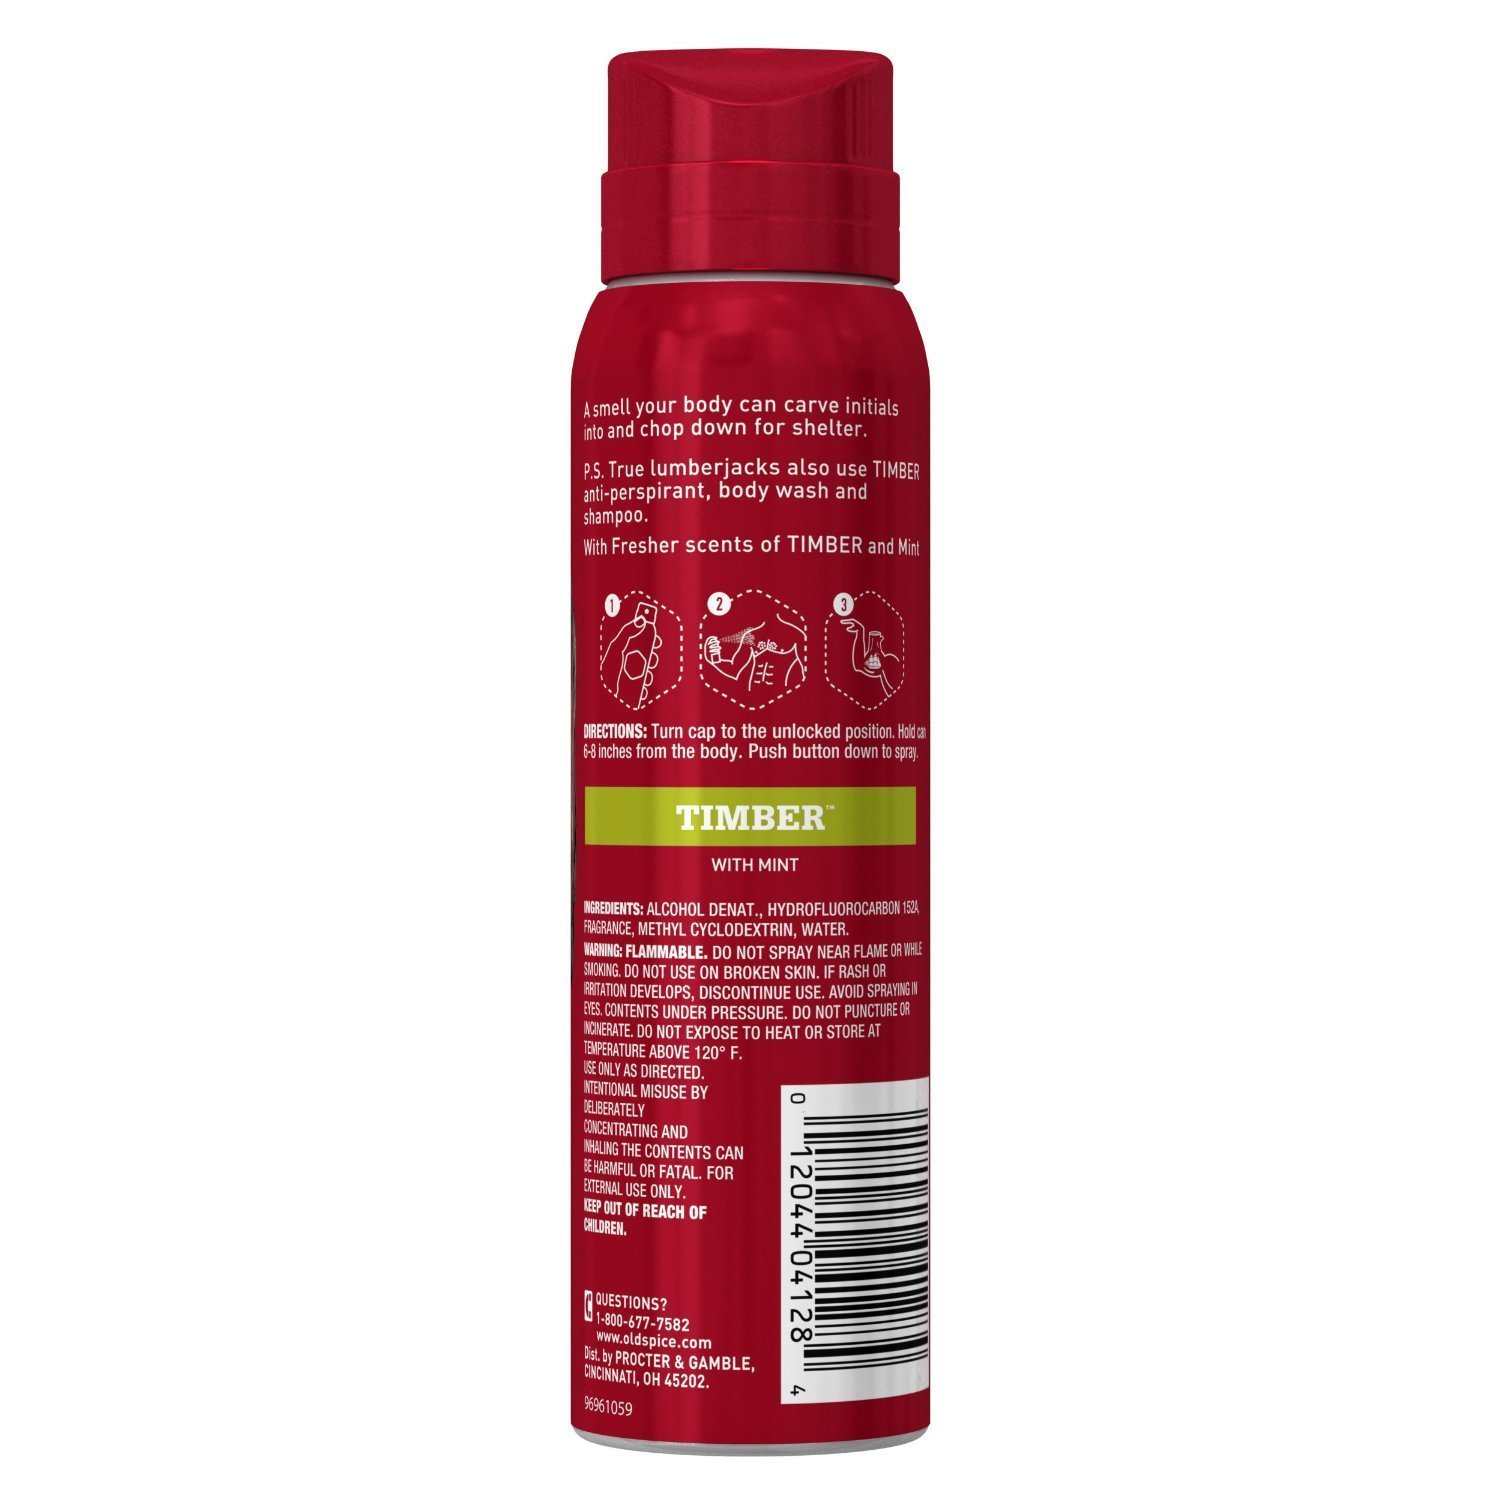 Old Spice Re Fresh Body Spray – Fresher Collection – Timber – Net Wt. 3.75 OZ 106 g Each – Pack of 4